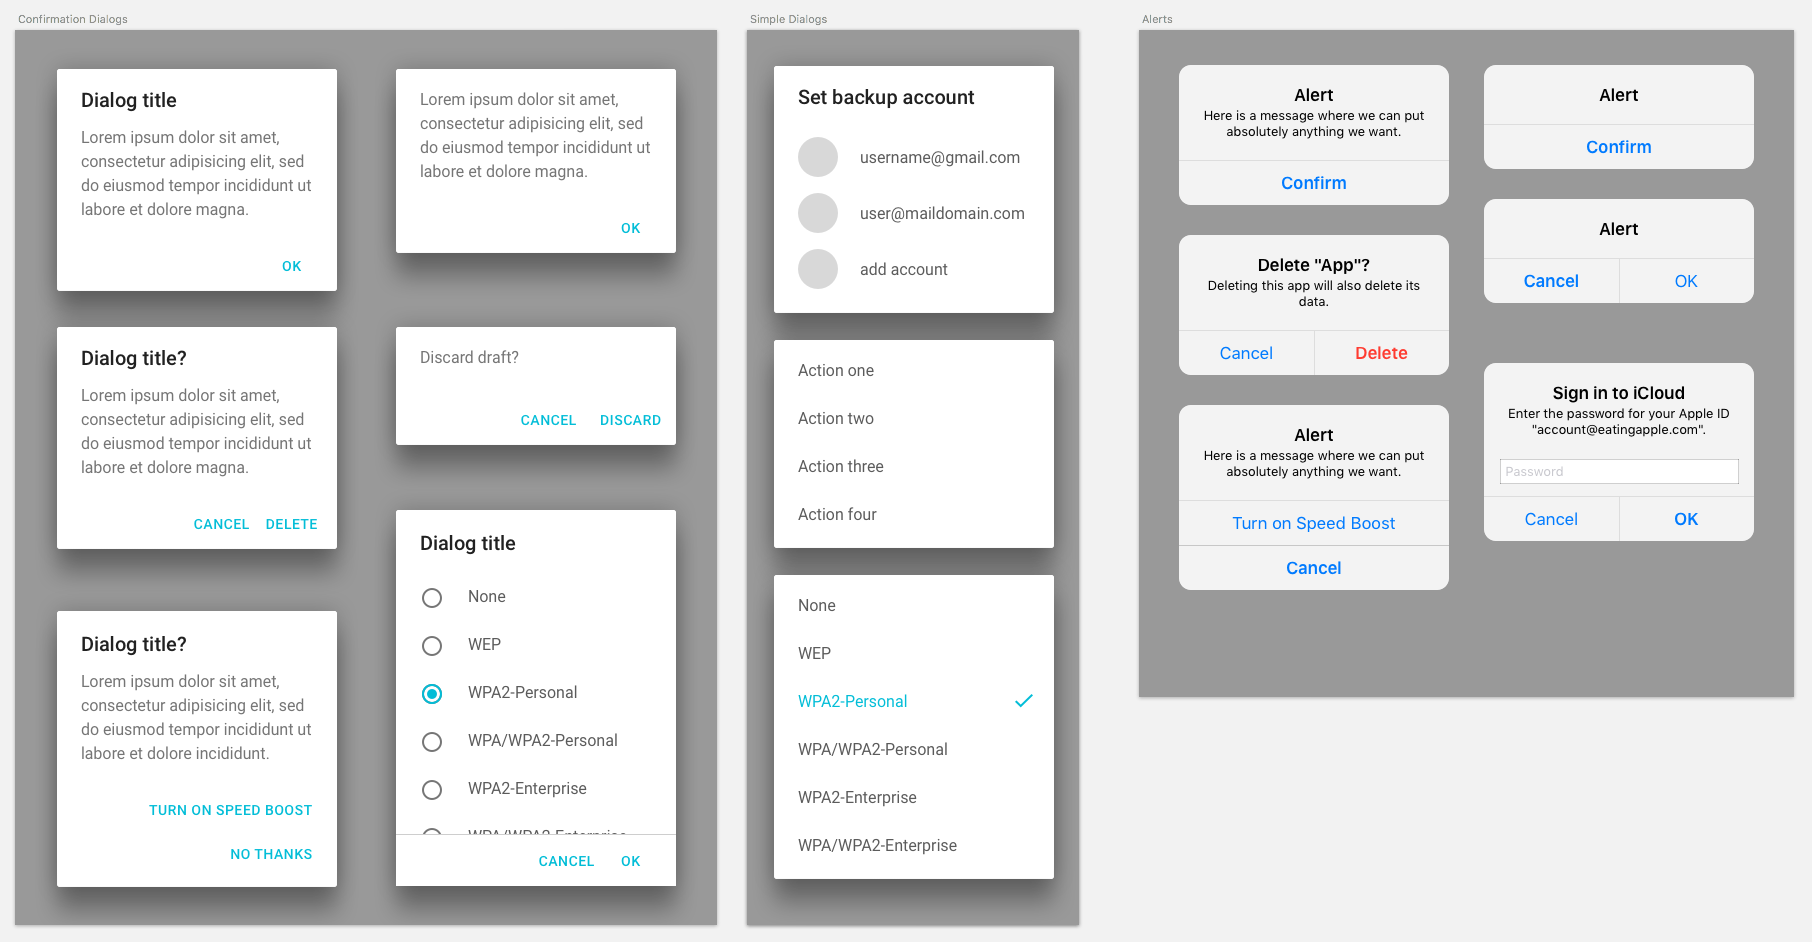 Android Vs Ios Compare 20 Ui Components Patterns Part 1 And The Red On Other 2nd Switch Utilizes Black White Guidelines Suggest Content Should Be Short To Avoid Scrolling In Alerts